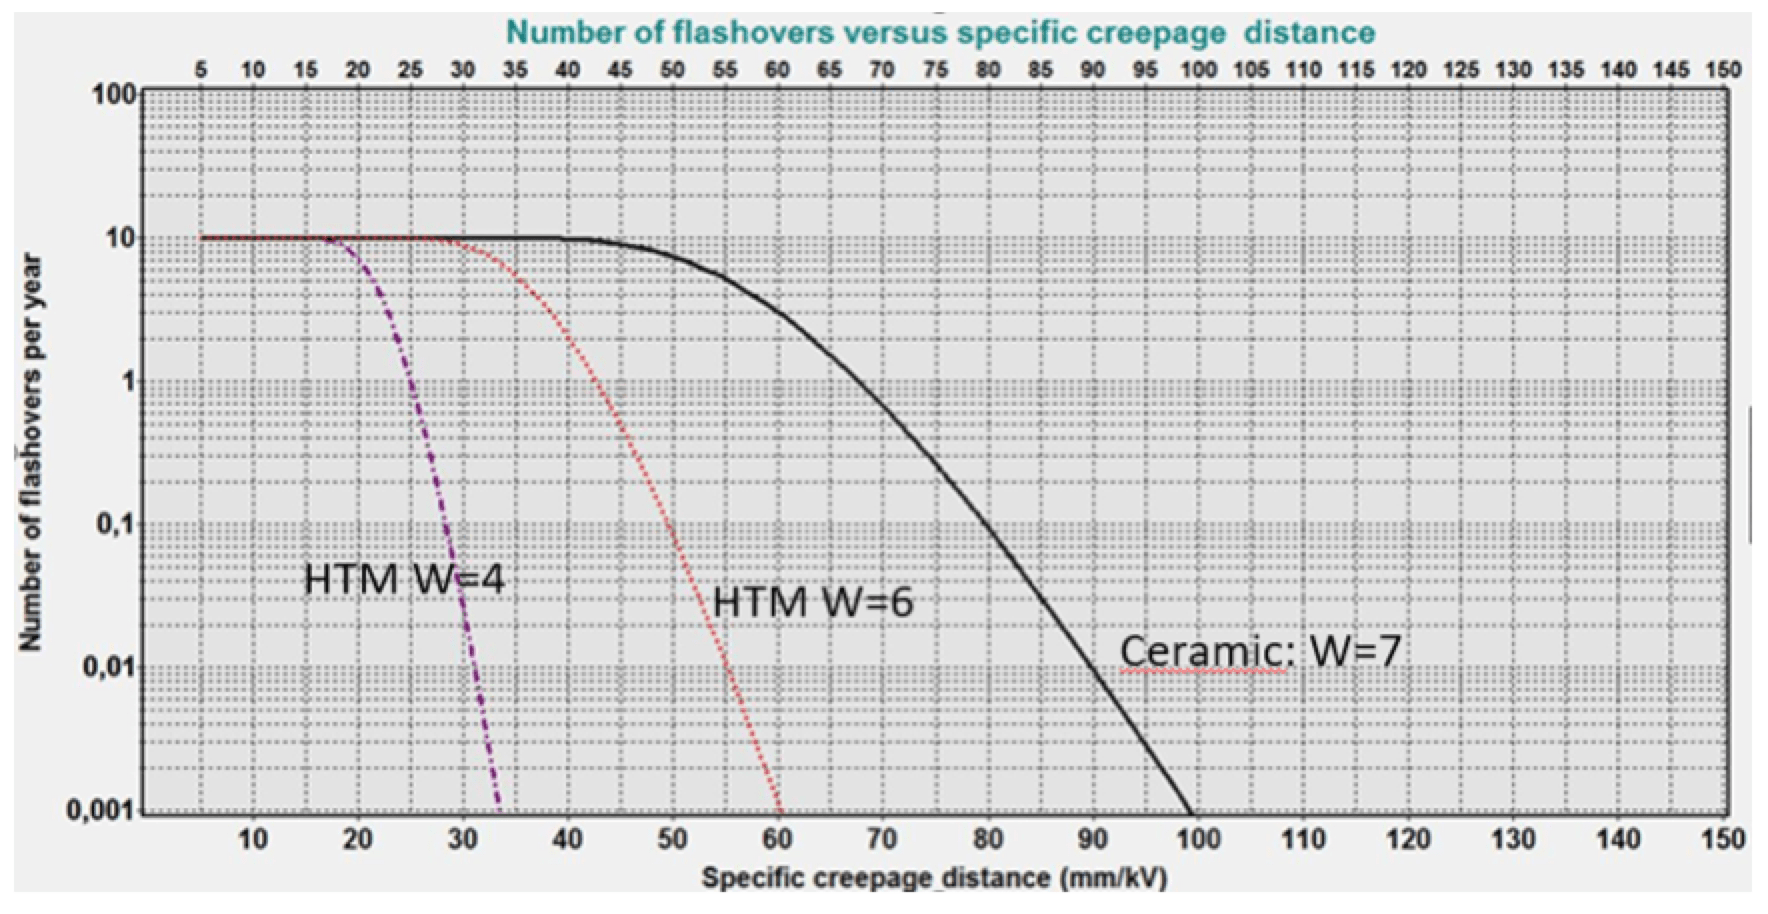 Comparison of specific creepage distance required for ceramic insulators and RTV coated insulators in initial service condition, WC 4, and after ageing, WC 6. (Harsh Saudi coastal environment, AC application).